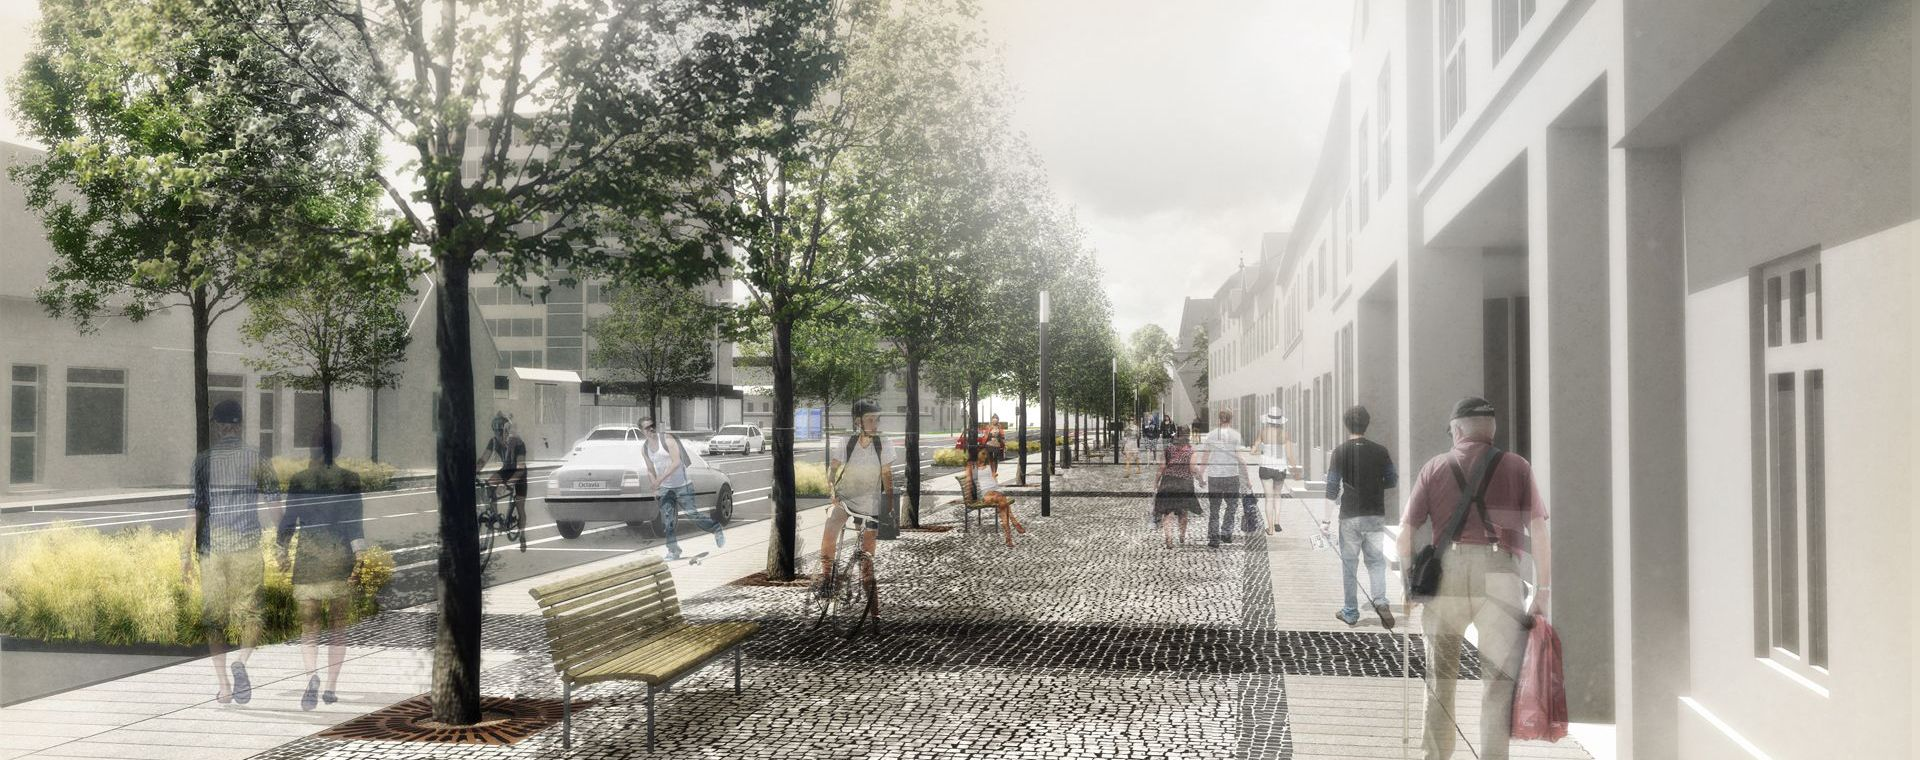 Revitalization of the city centre Planá nad Lužnicí - architectural competition 1st place